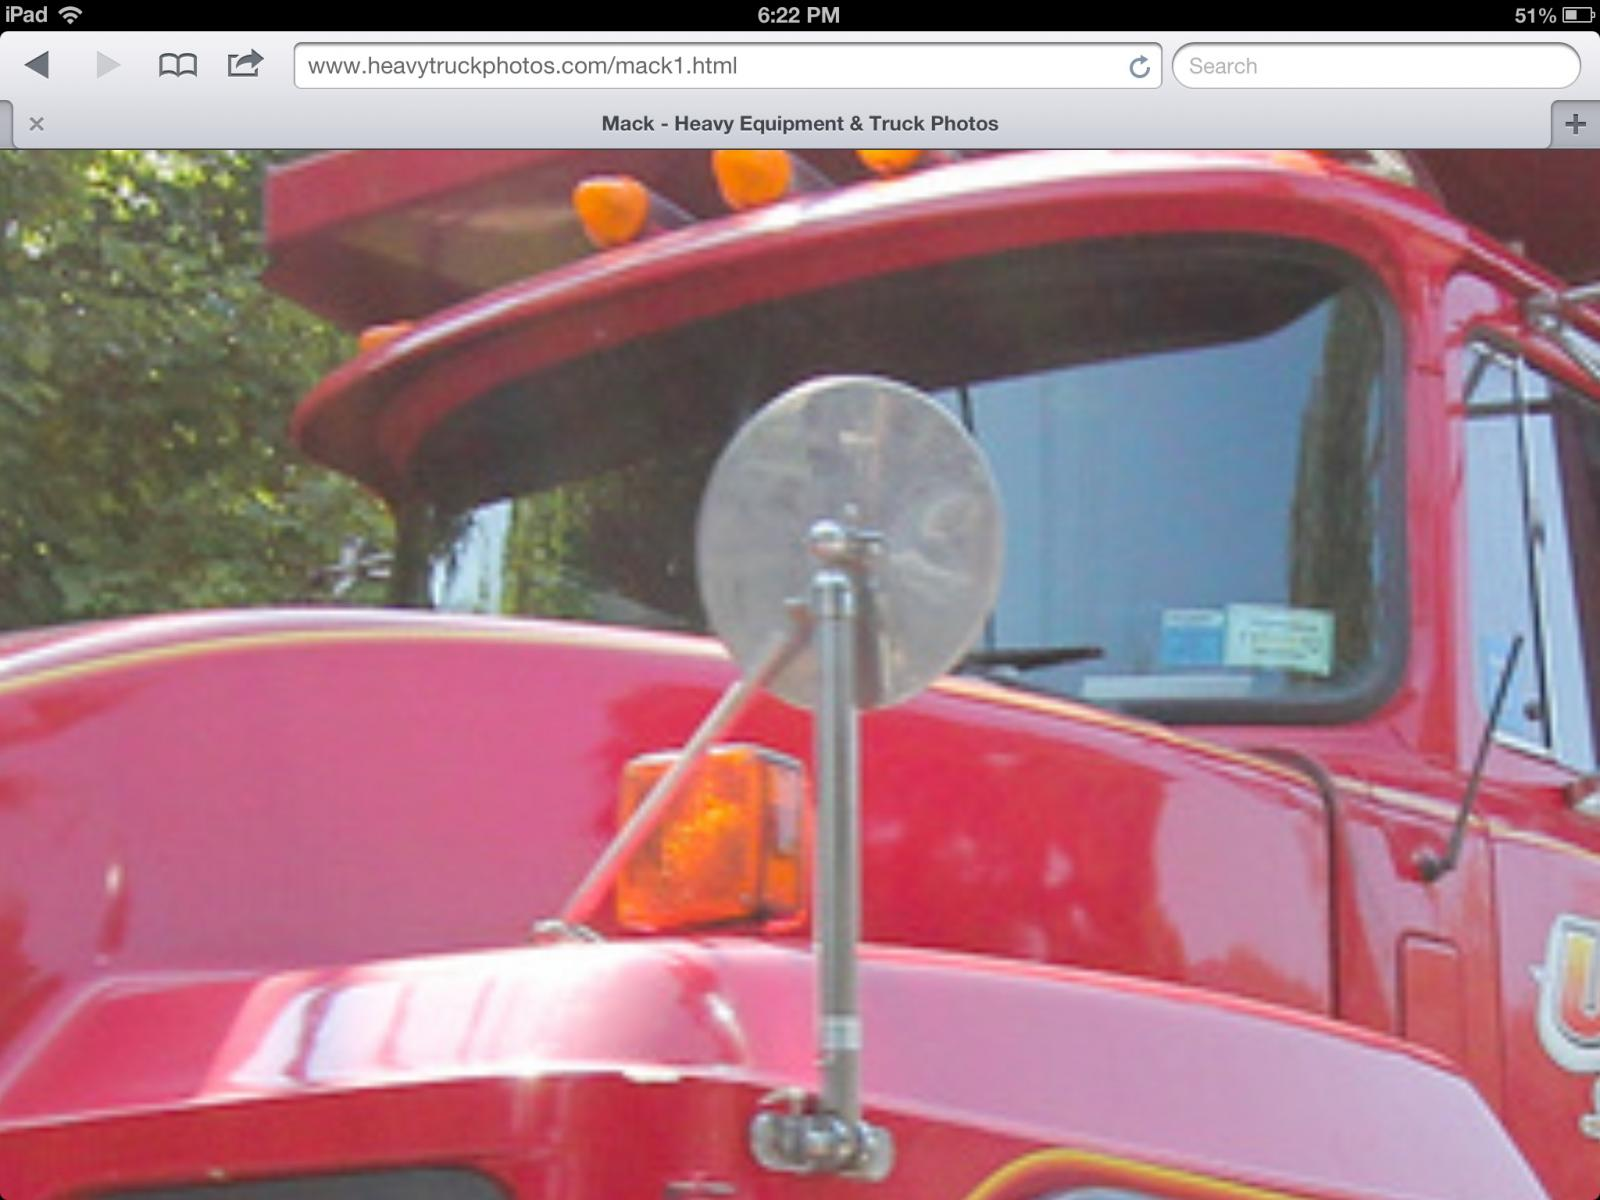 Fender Mirror Rd Exterior Cab Accessories And